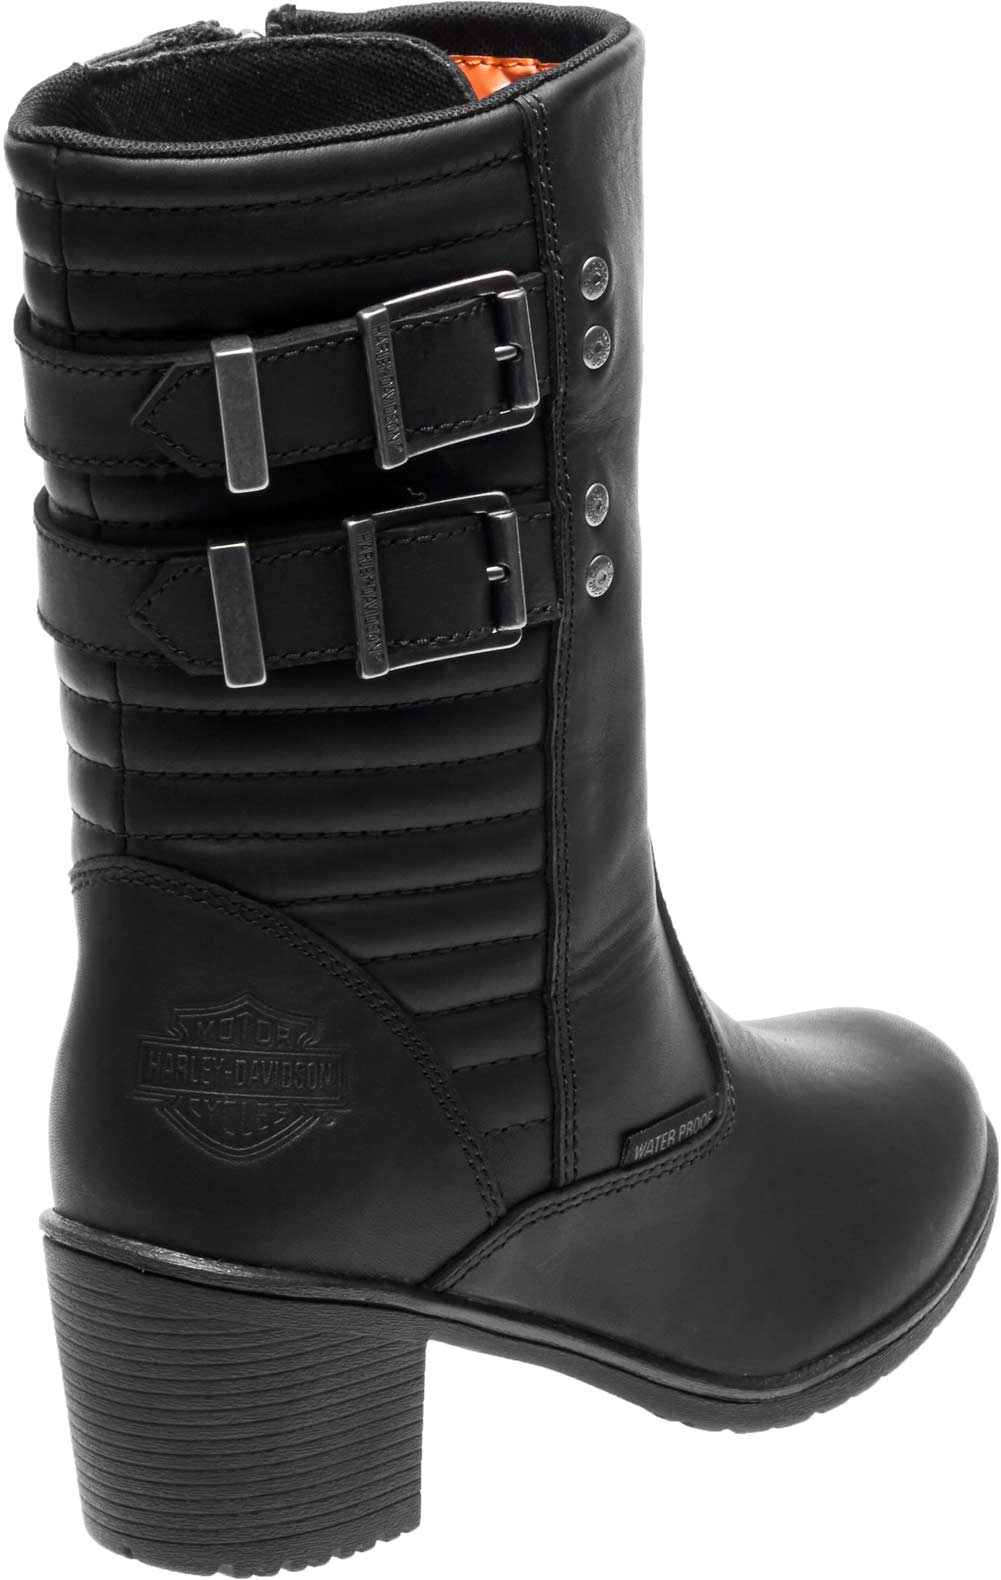 Harley Davidson® Women's Kirkley 8 Inch Waterproof Black Motorcycle Boots D87143